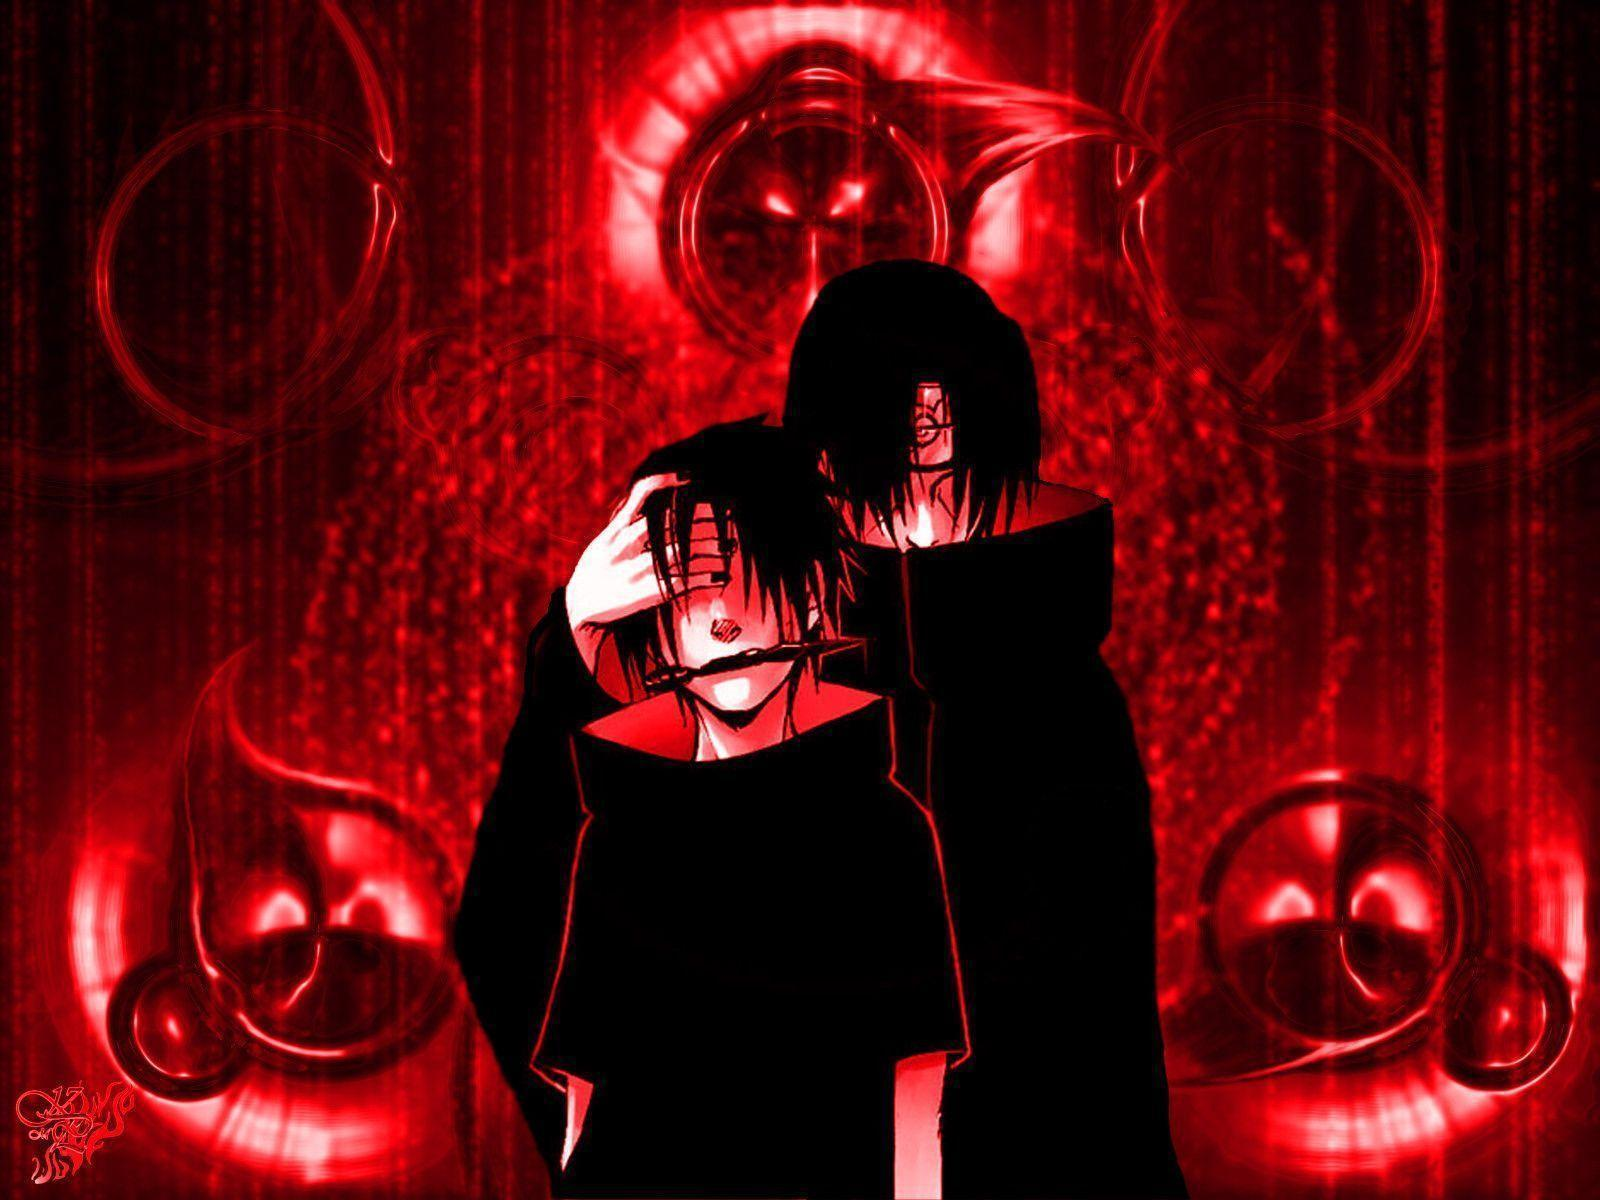 Wallpapers For > Itachi Sharingan Wallpaper Hd